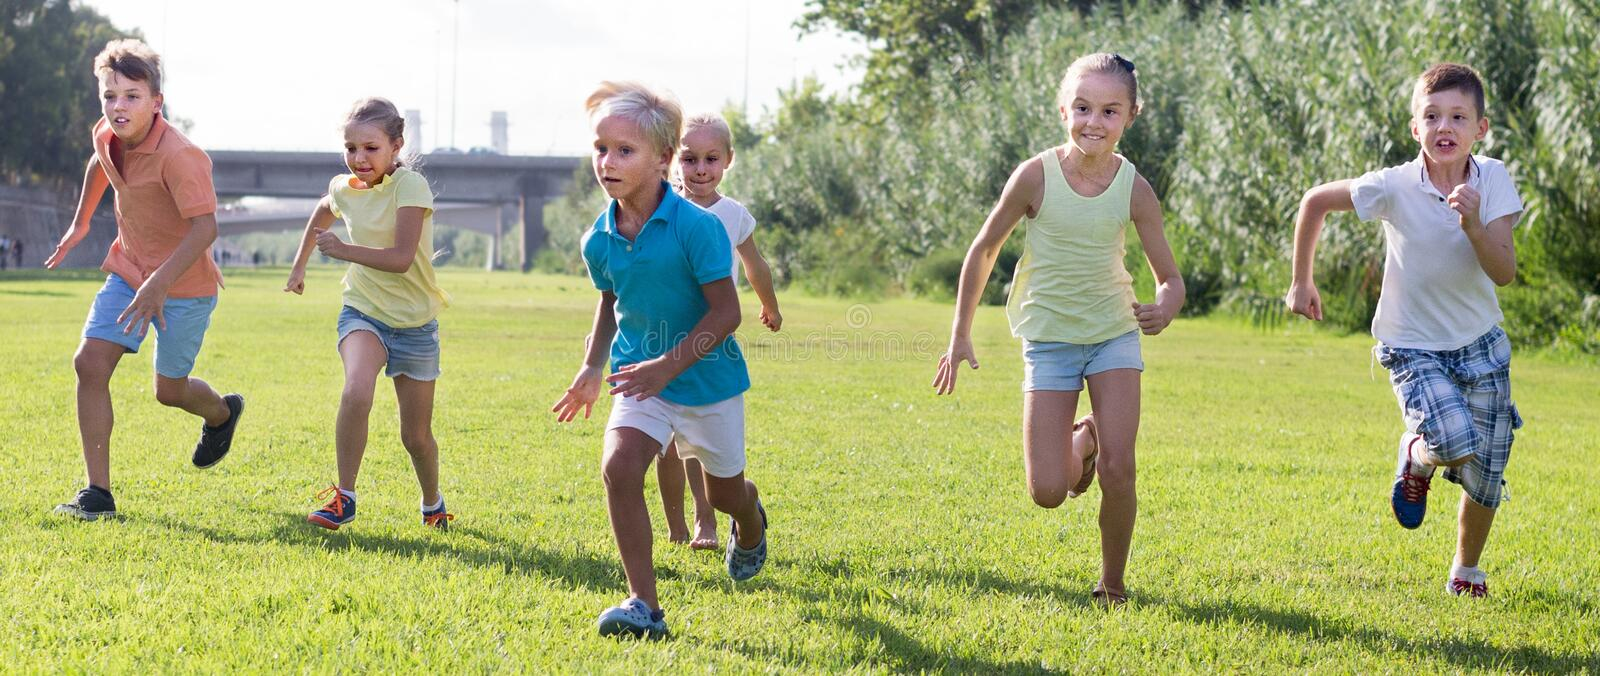 Download children running in park stock image. Image of leisure - 95273361